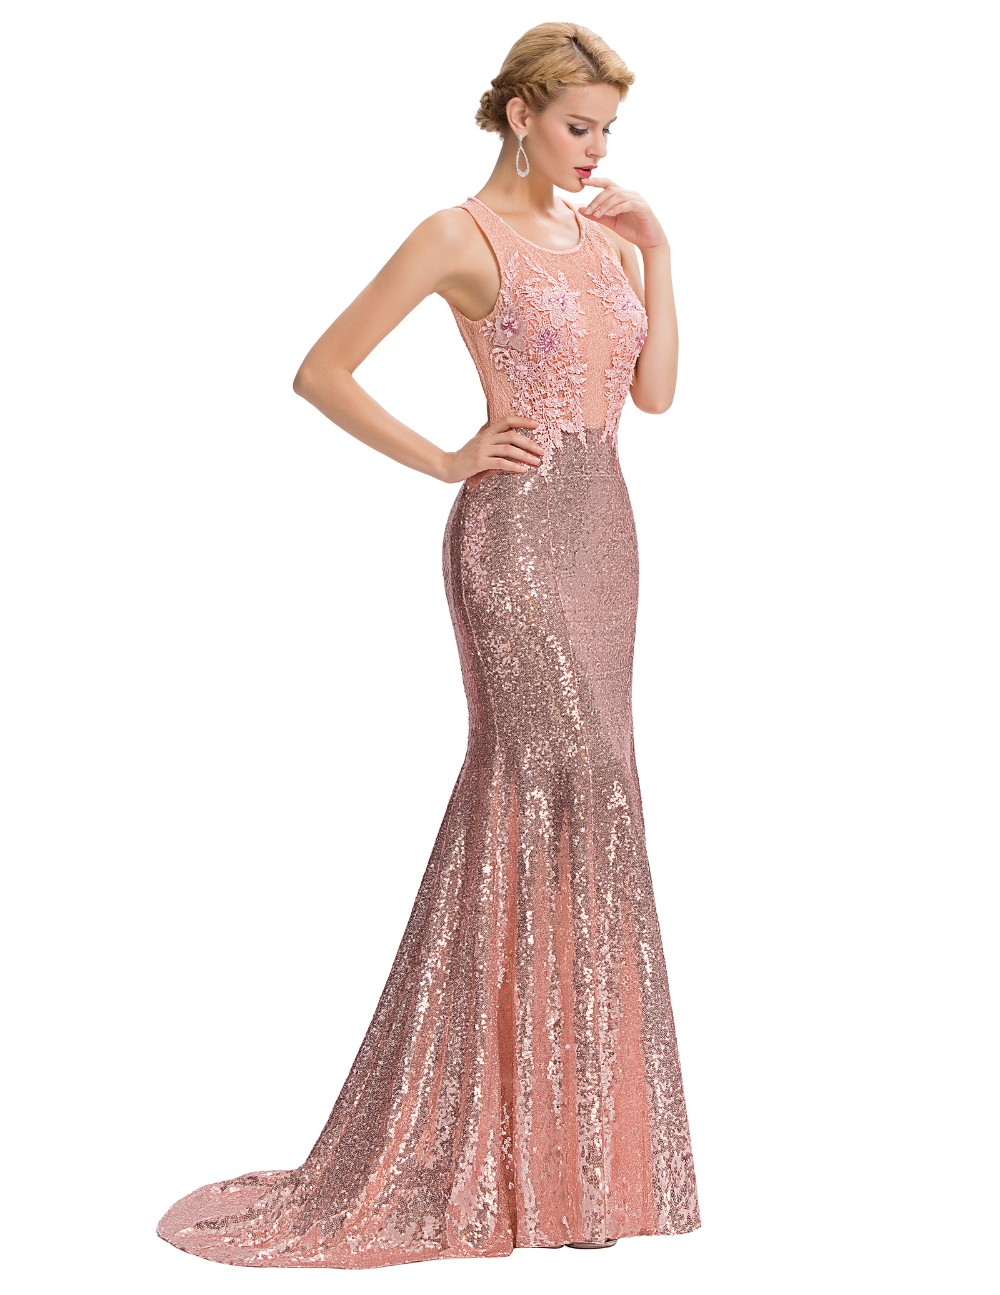 Elegant Pink Sequin Floor Length Backless Lace Mermaid Evening Dress 9